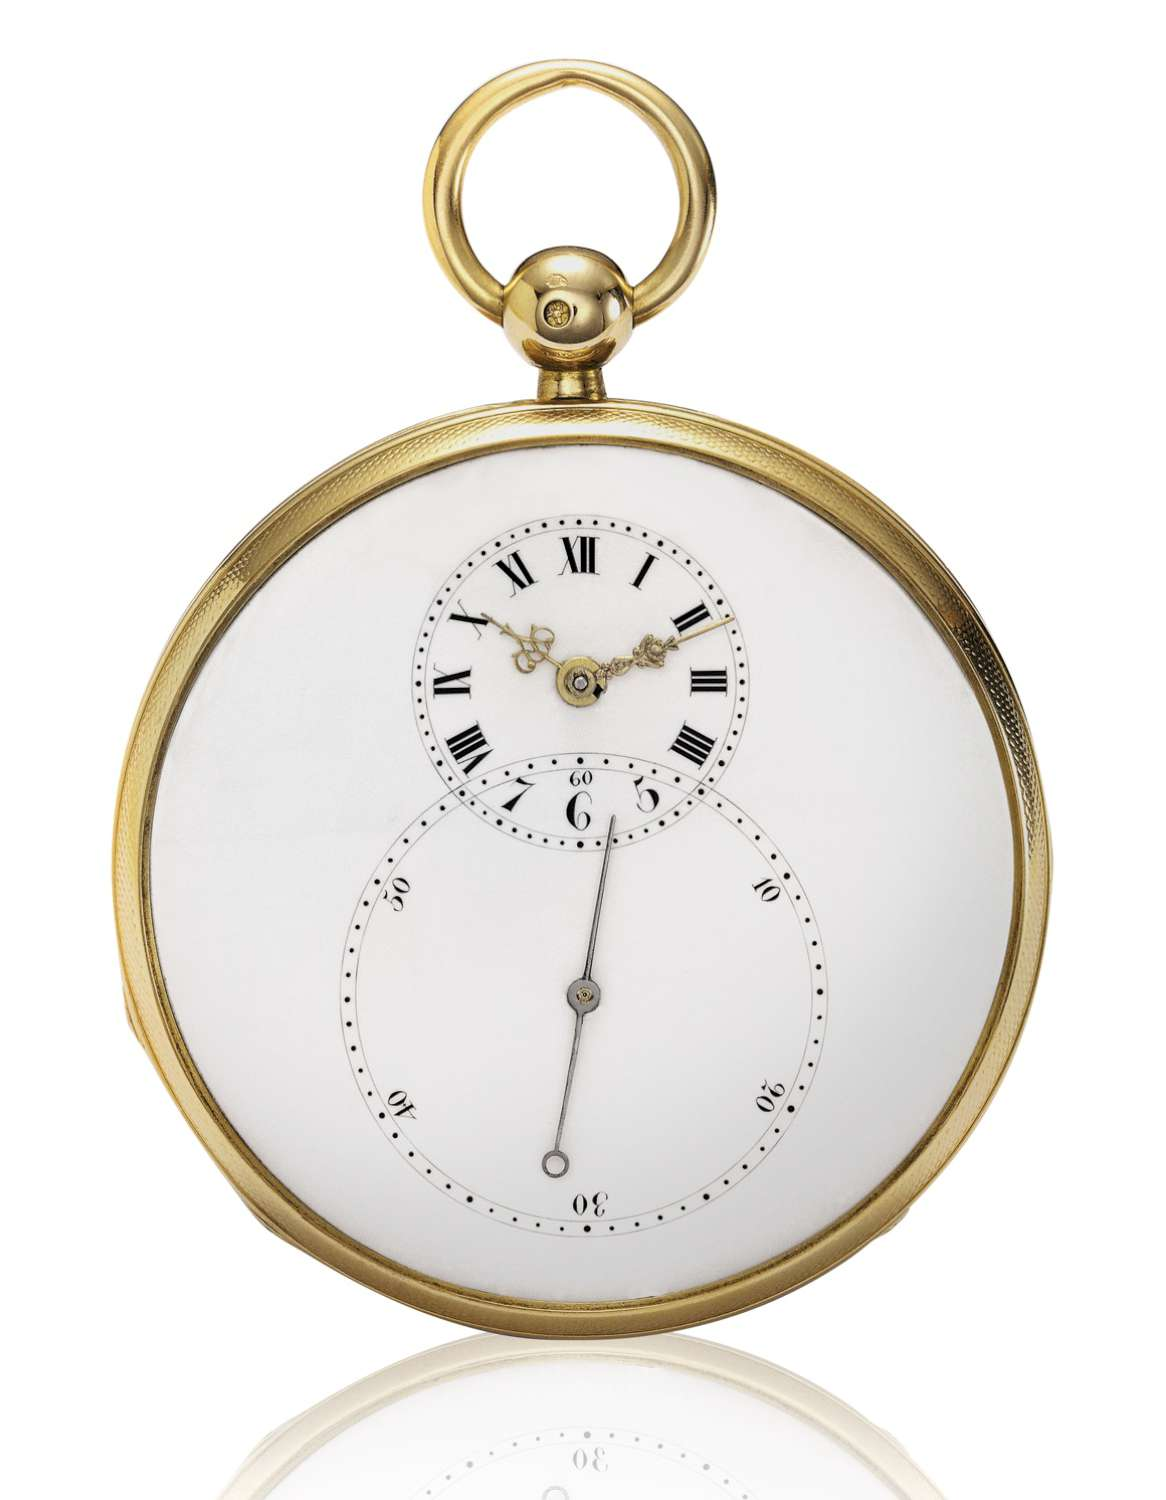 The Grande Seconde pocket watch made by Pierre Jaquet-Droz in 1784.